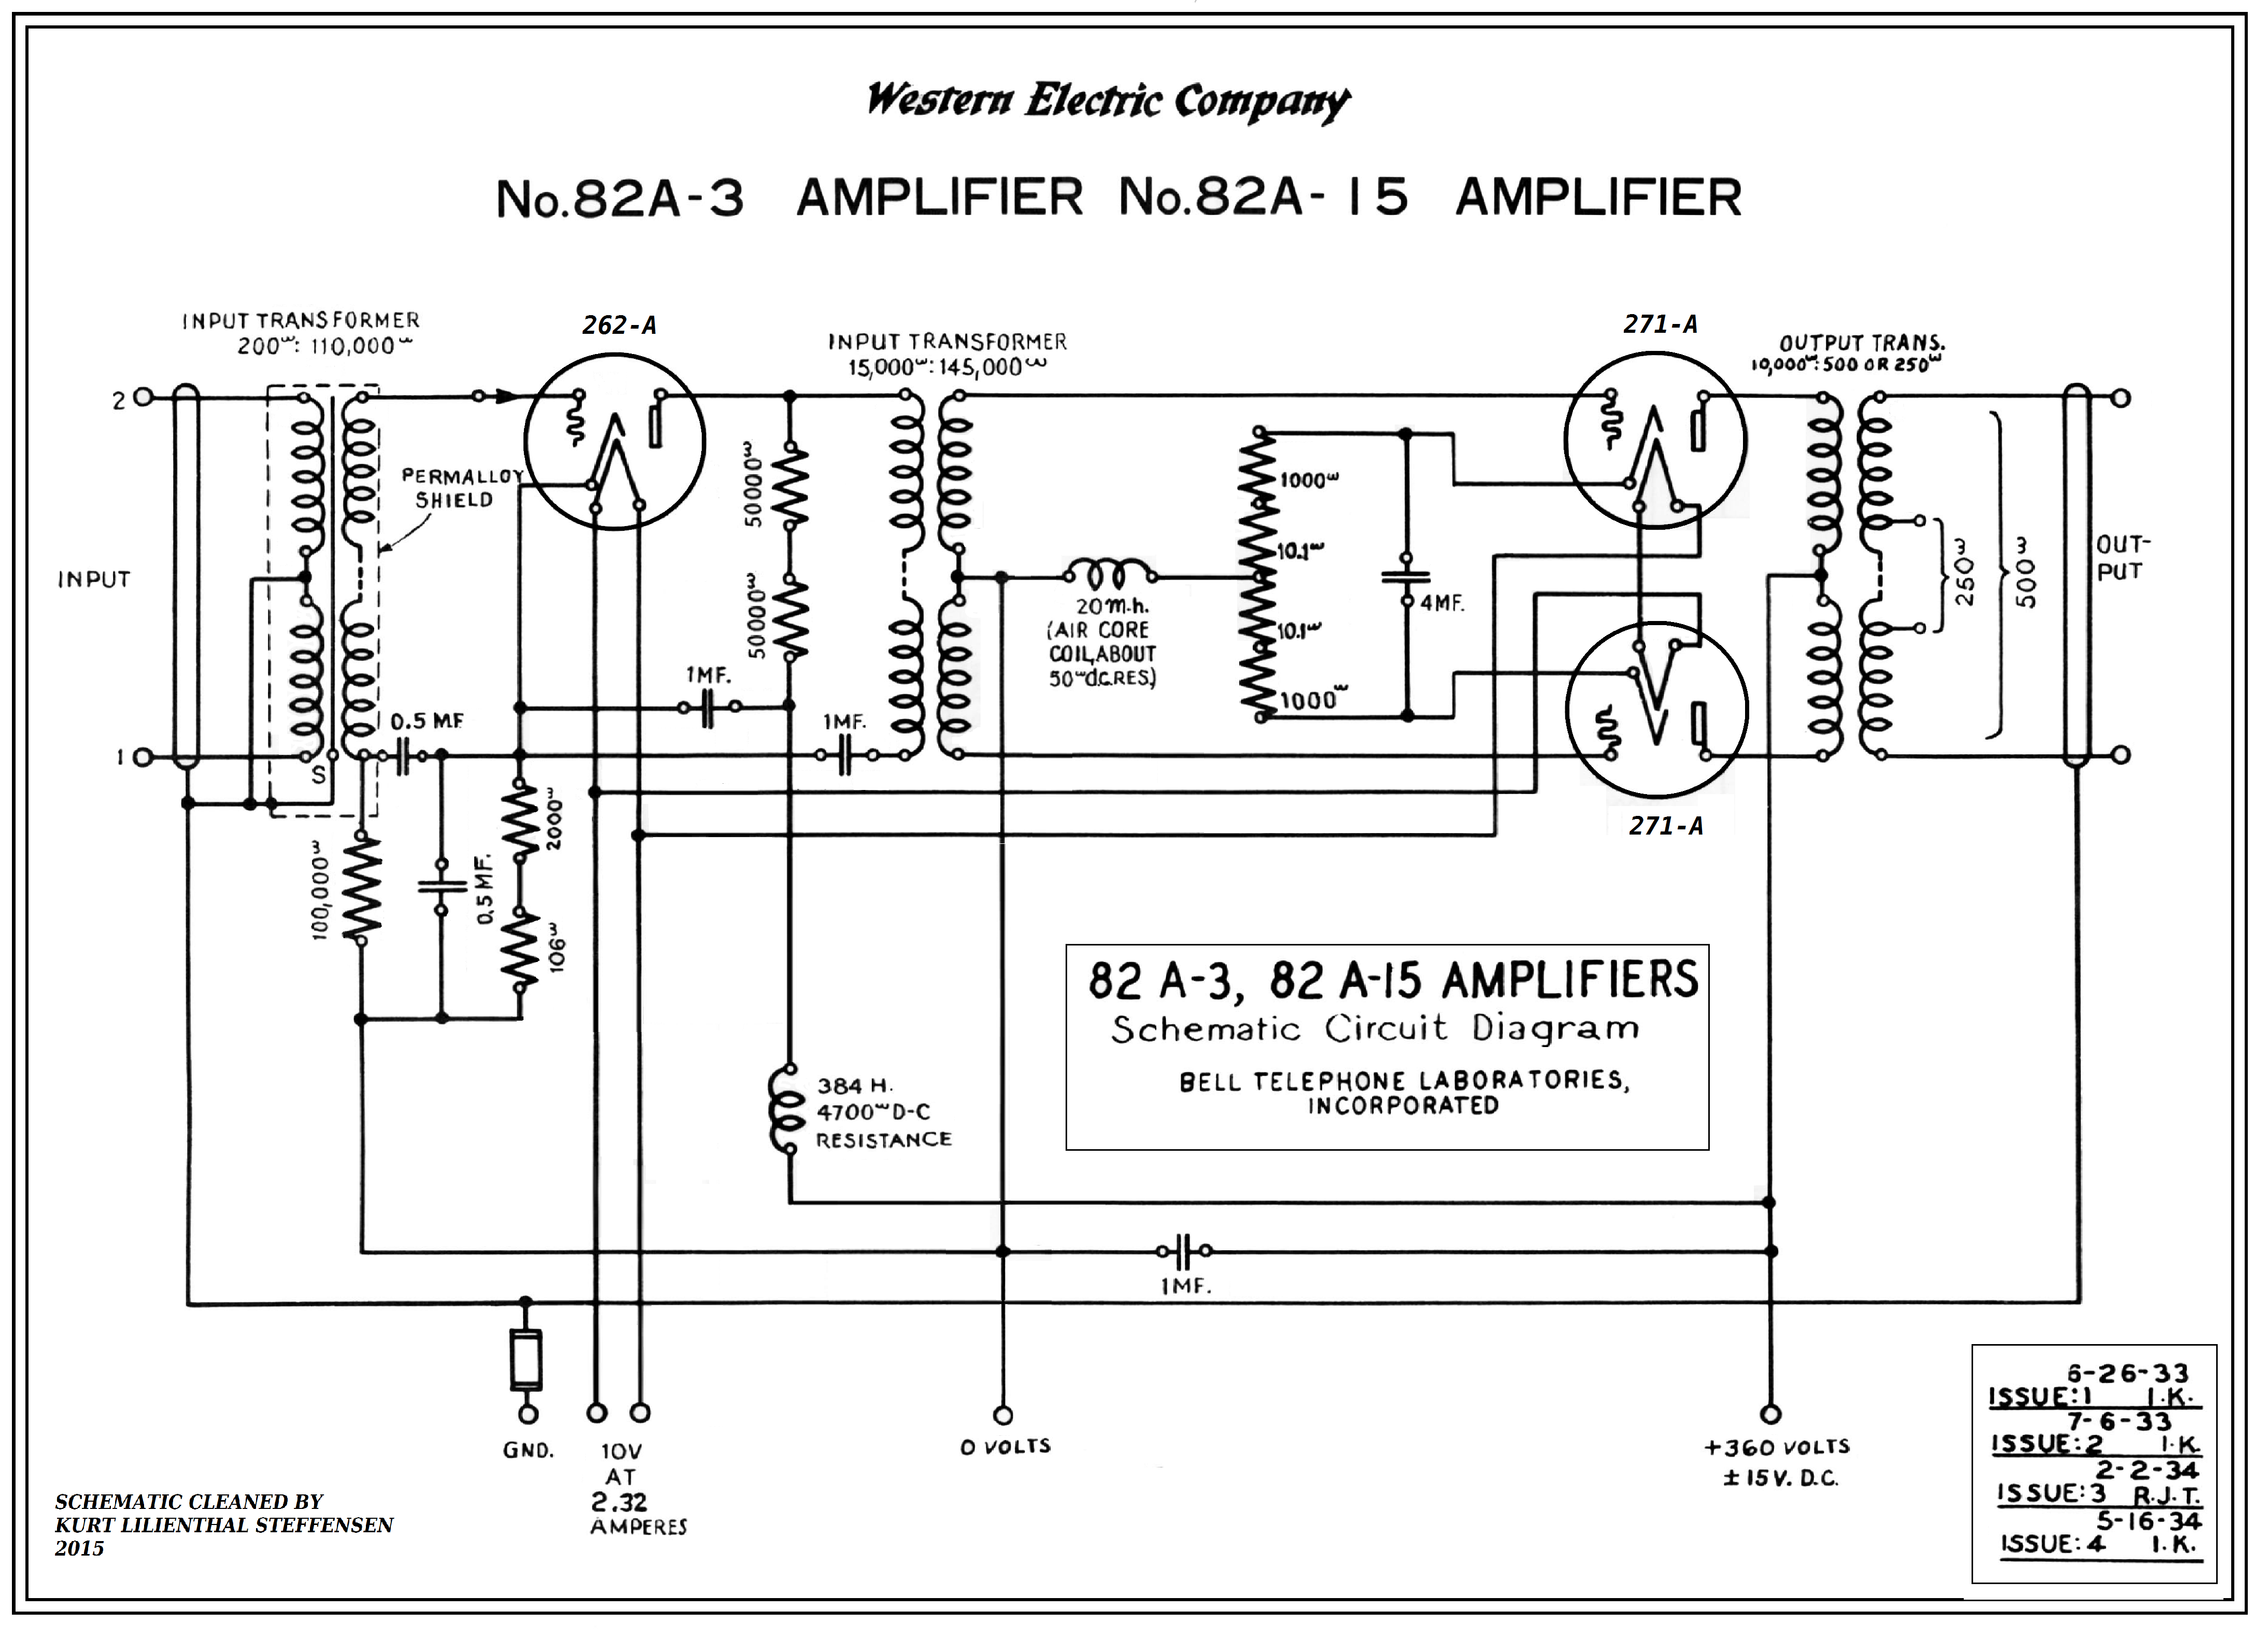 100 Amplifiers Part 1 1916 45 Lilienthal Engineering Circuit Diagram Audio Tube Amplifier Typical Application Western Electric 82 A 271a Pp Ed Version